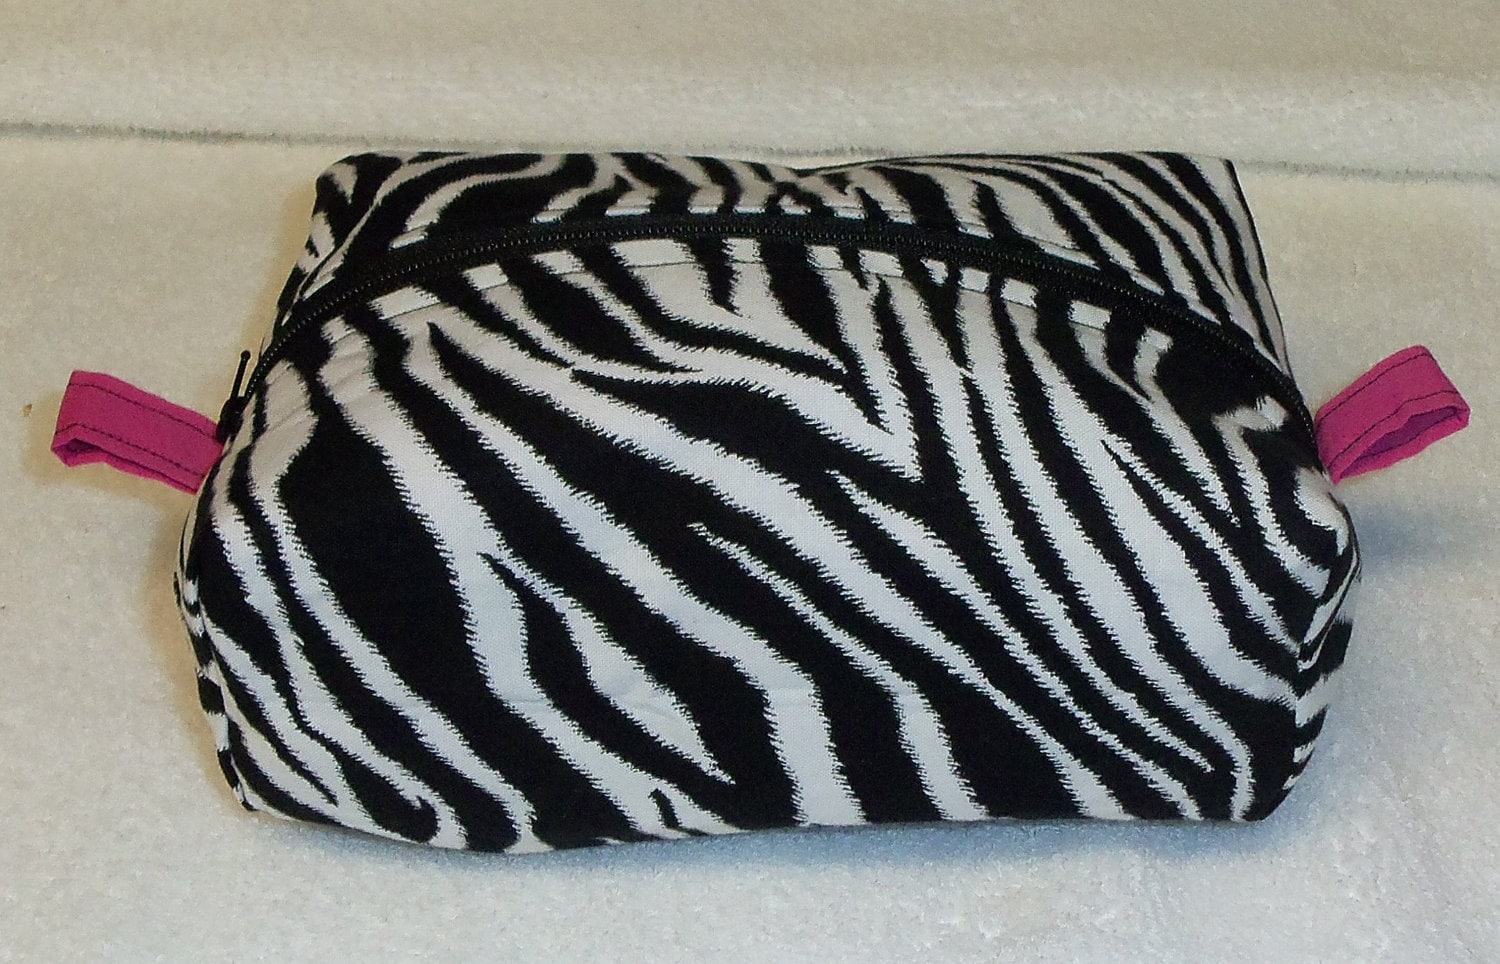 Makeup Bag with top Zipper. Lined with coordinating material and all Hand Crafted.  Zebra Print and Pink